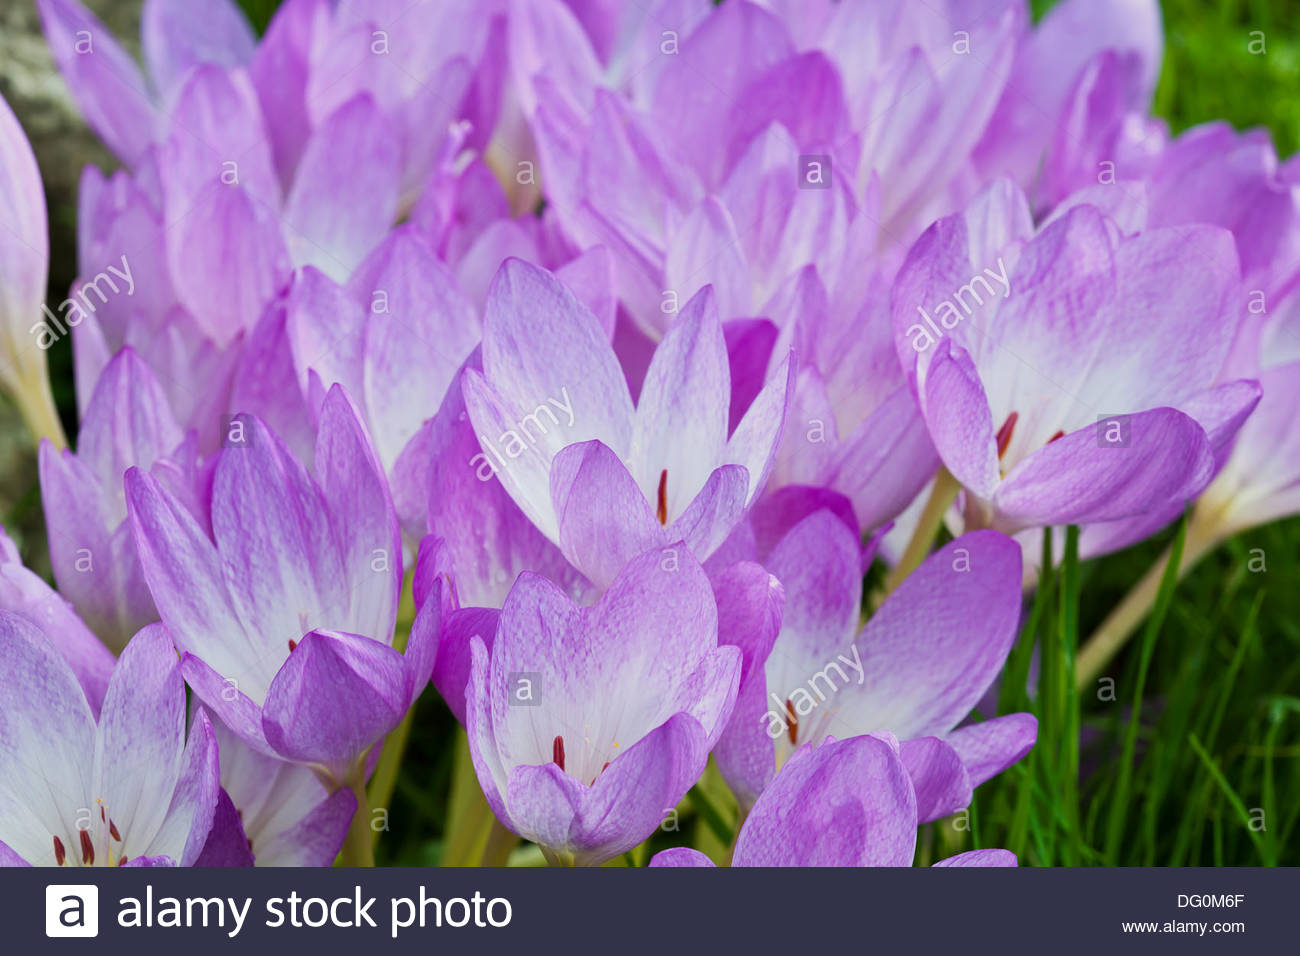 Colchicum autumnale fall autumn crocus flowers white flower colchicum autumnale fall autumn crocus flowers white flower perennial bulb september purple violet lilac white garden plant mightylinksfo